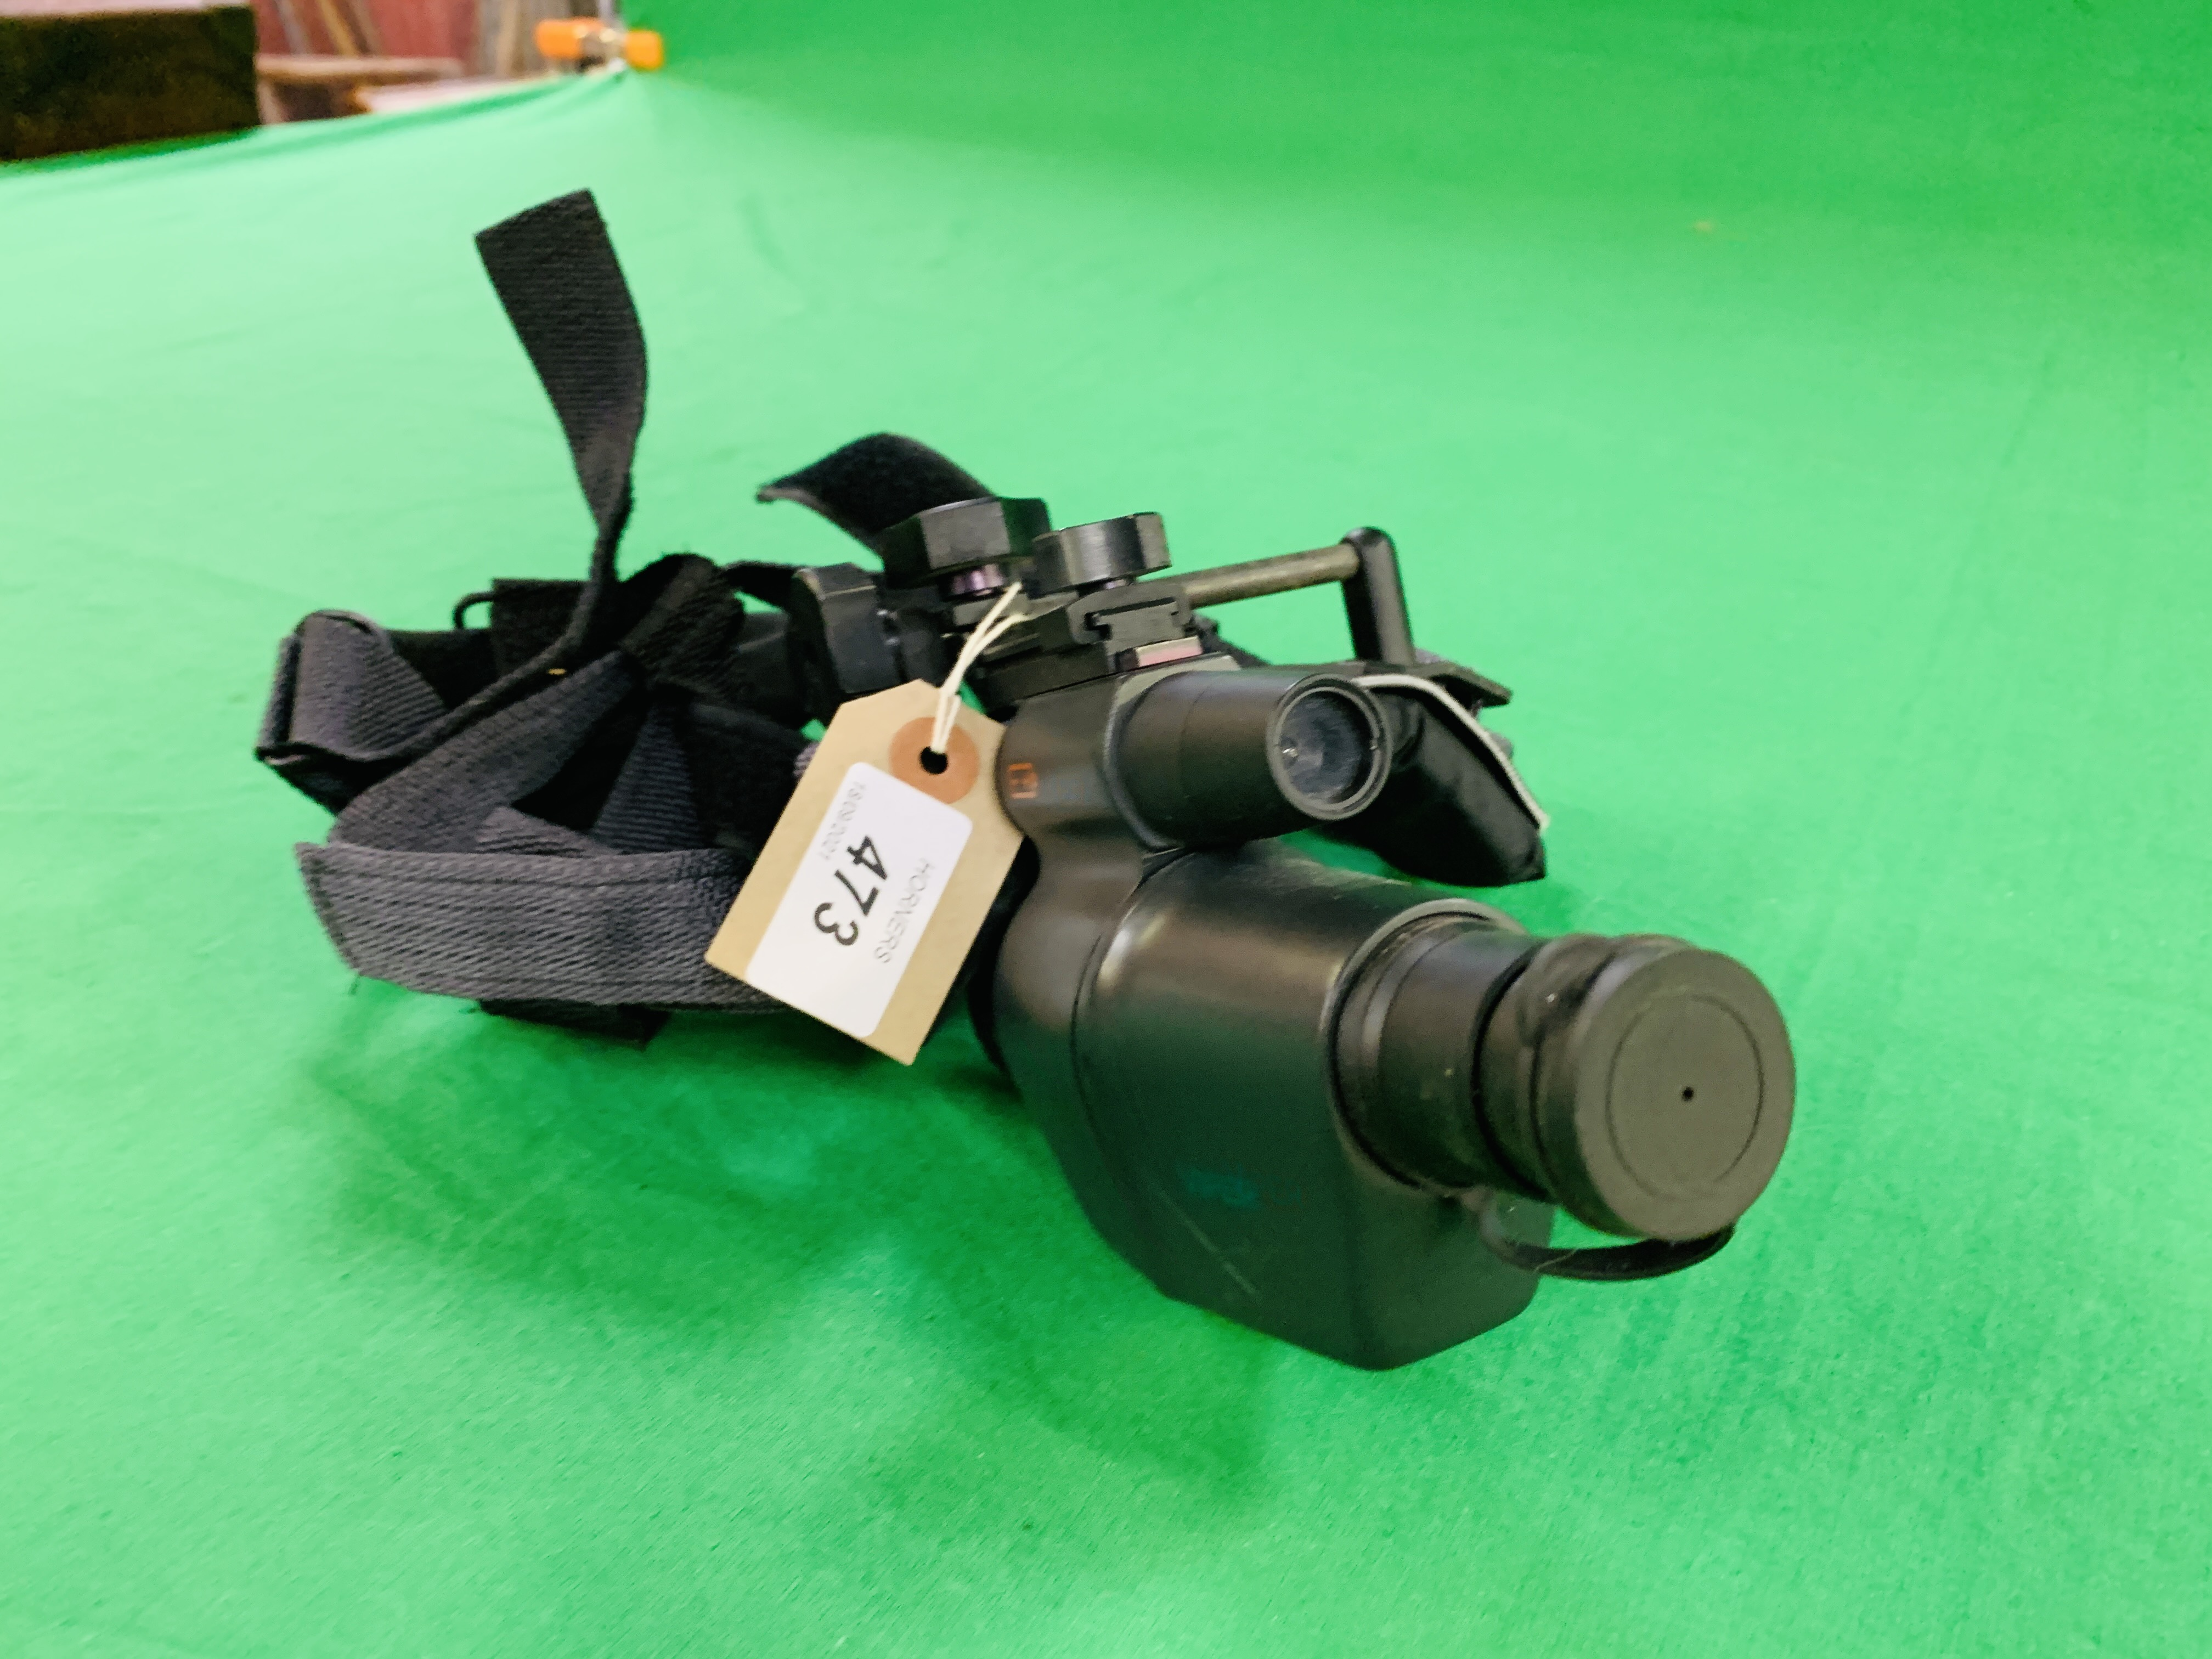 A ATN VIPER NIGHT VISION MONOCULAR INFERRED SITE WITH HEAD BAND - Image 4 of 6